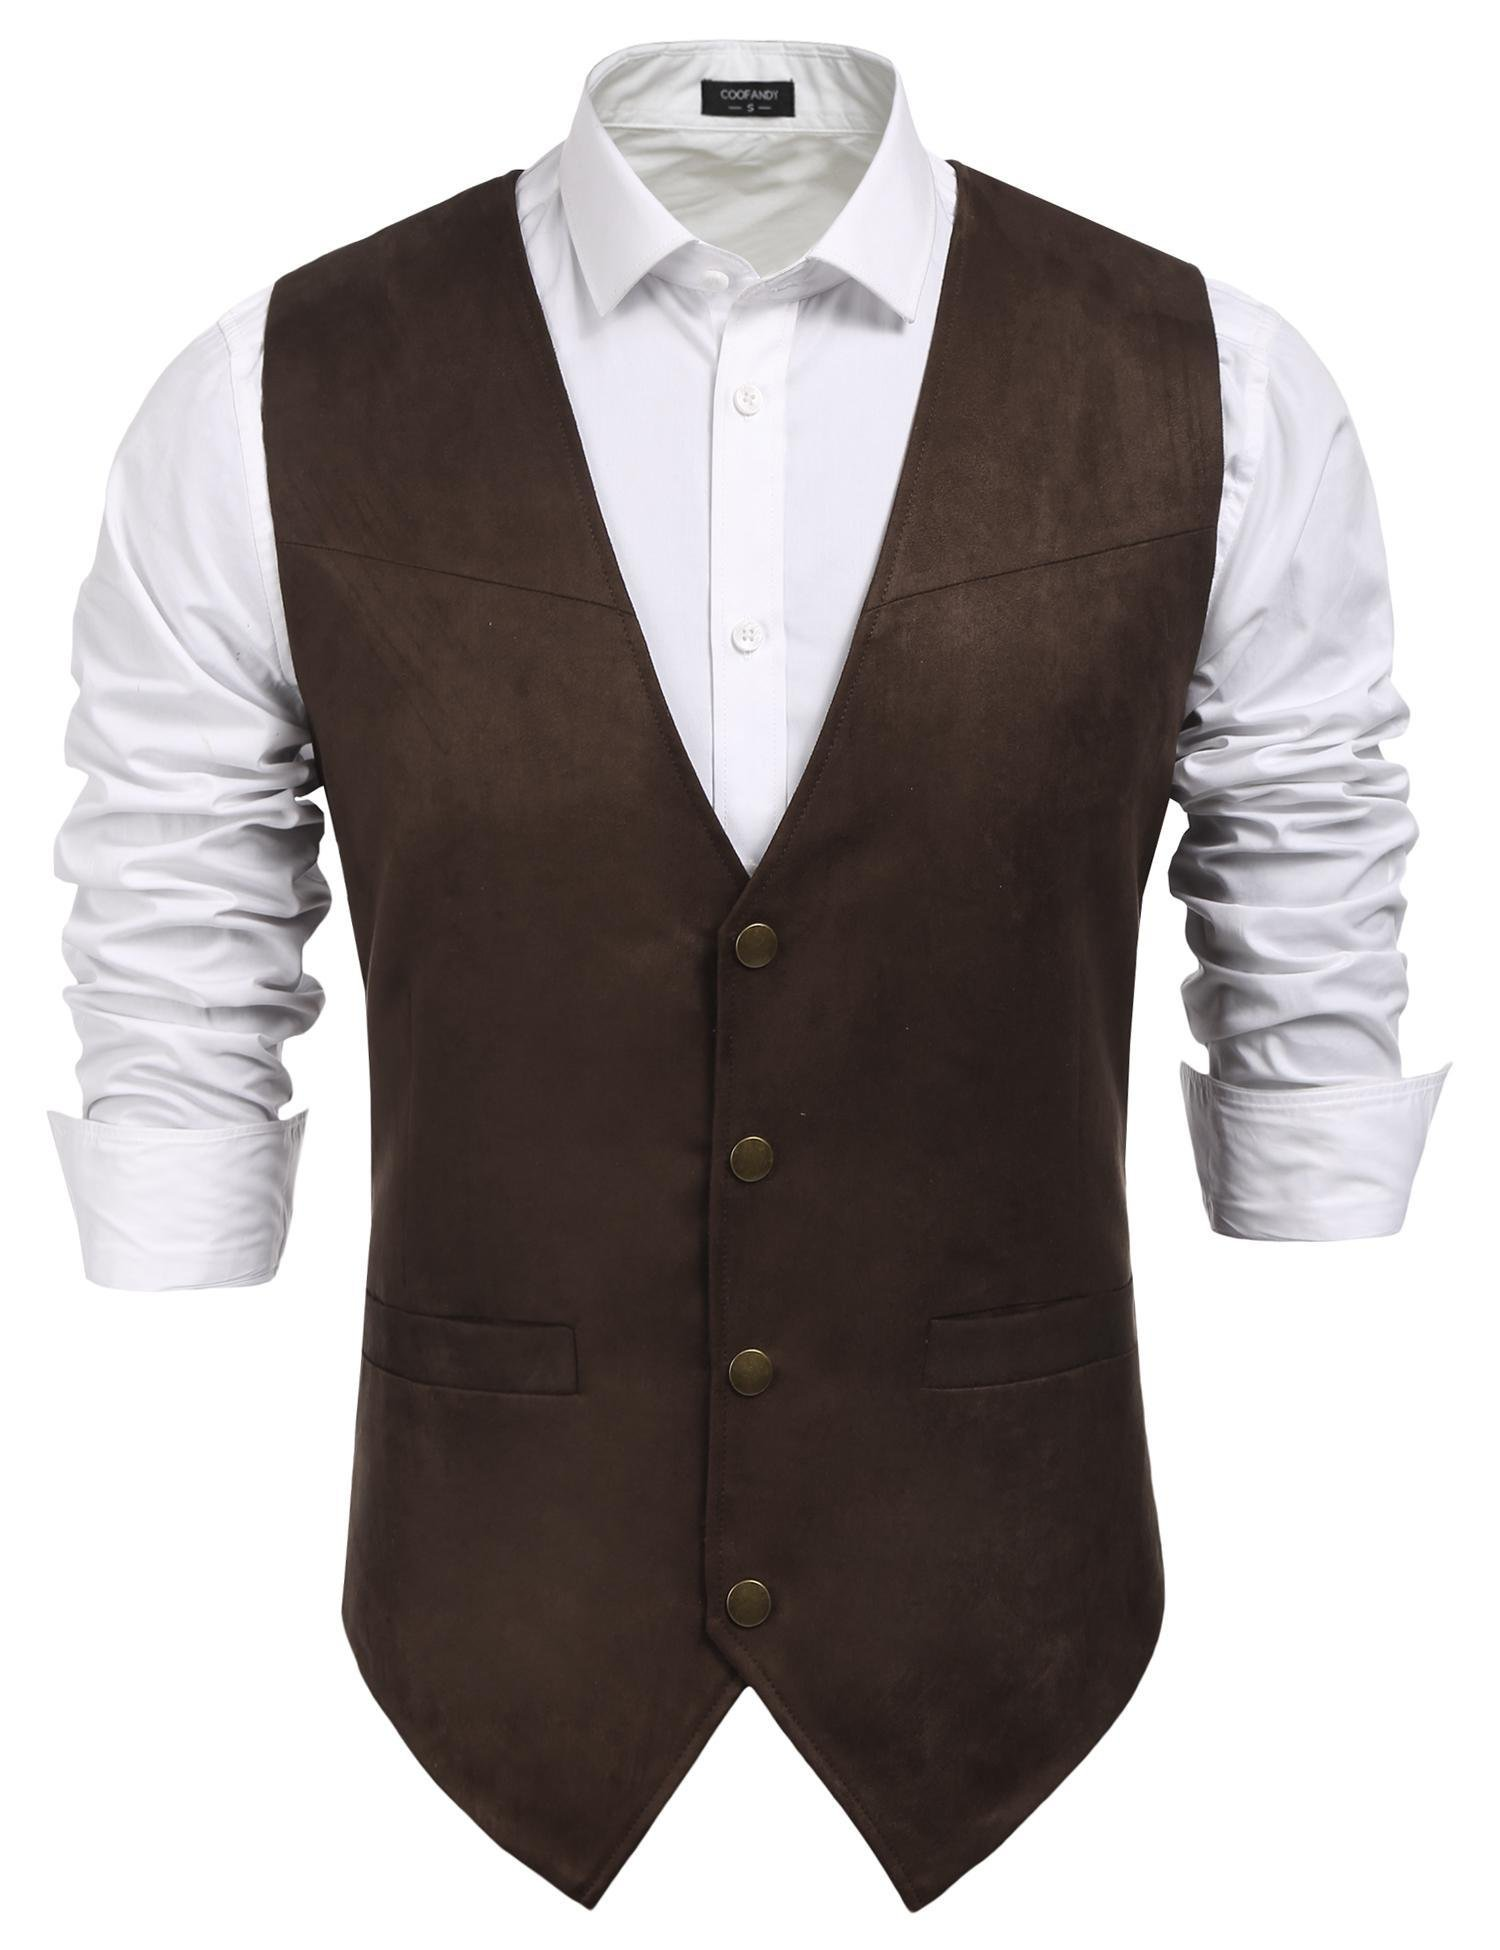 Coofandy Men's Slim Leather Vest Suede Vest Single-Breasted Vest, Coffe, XX-Large